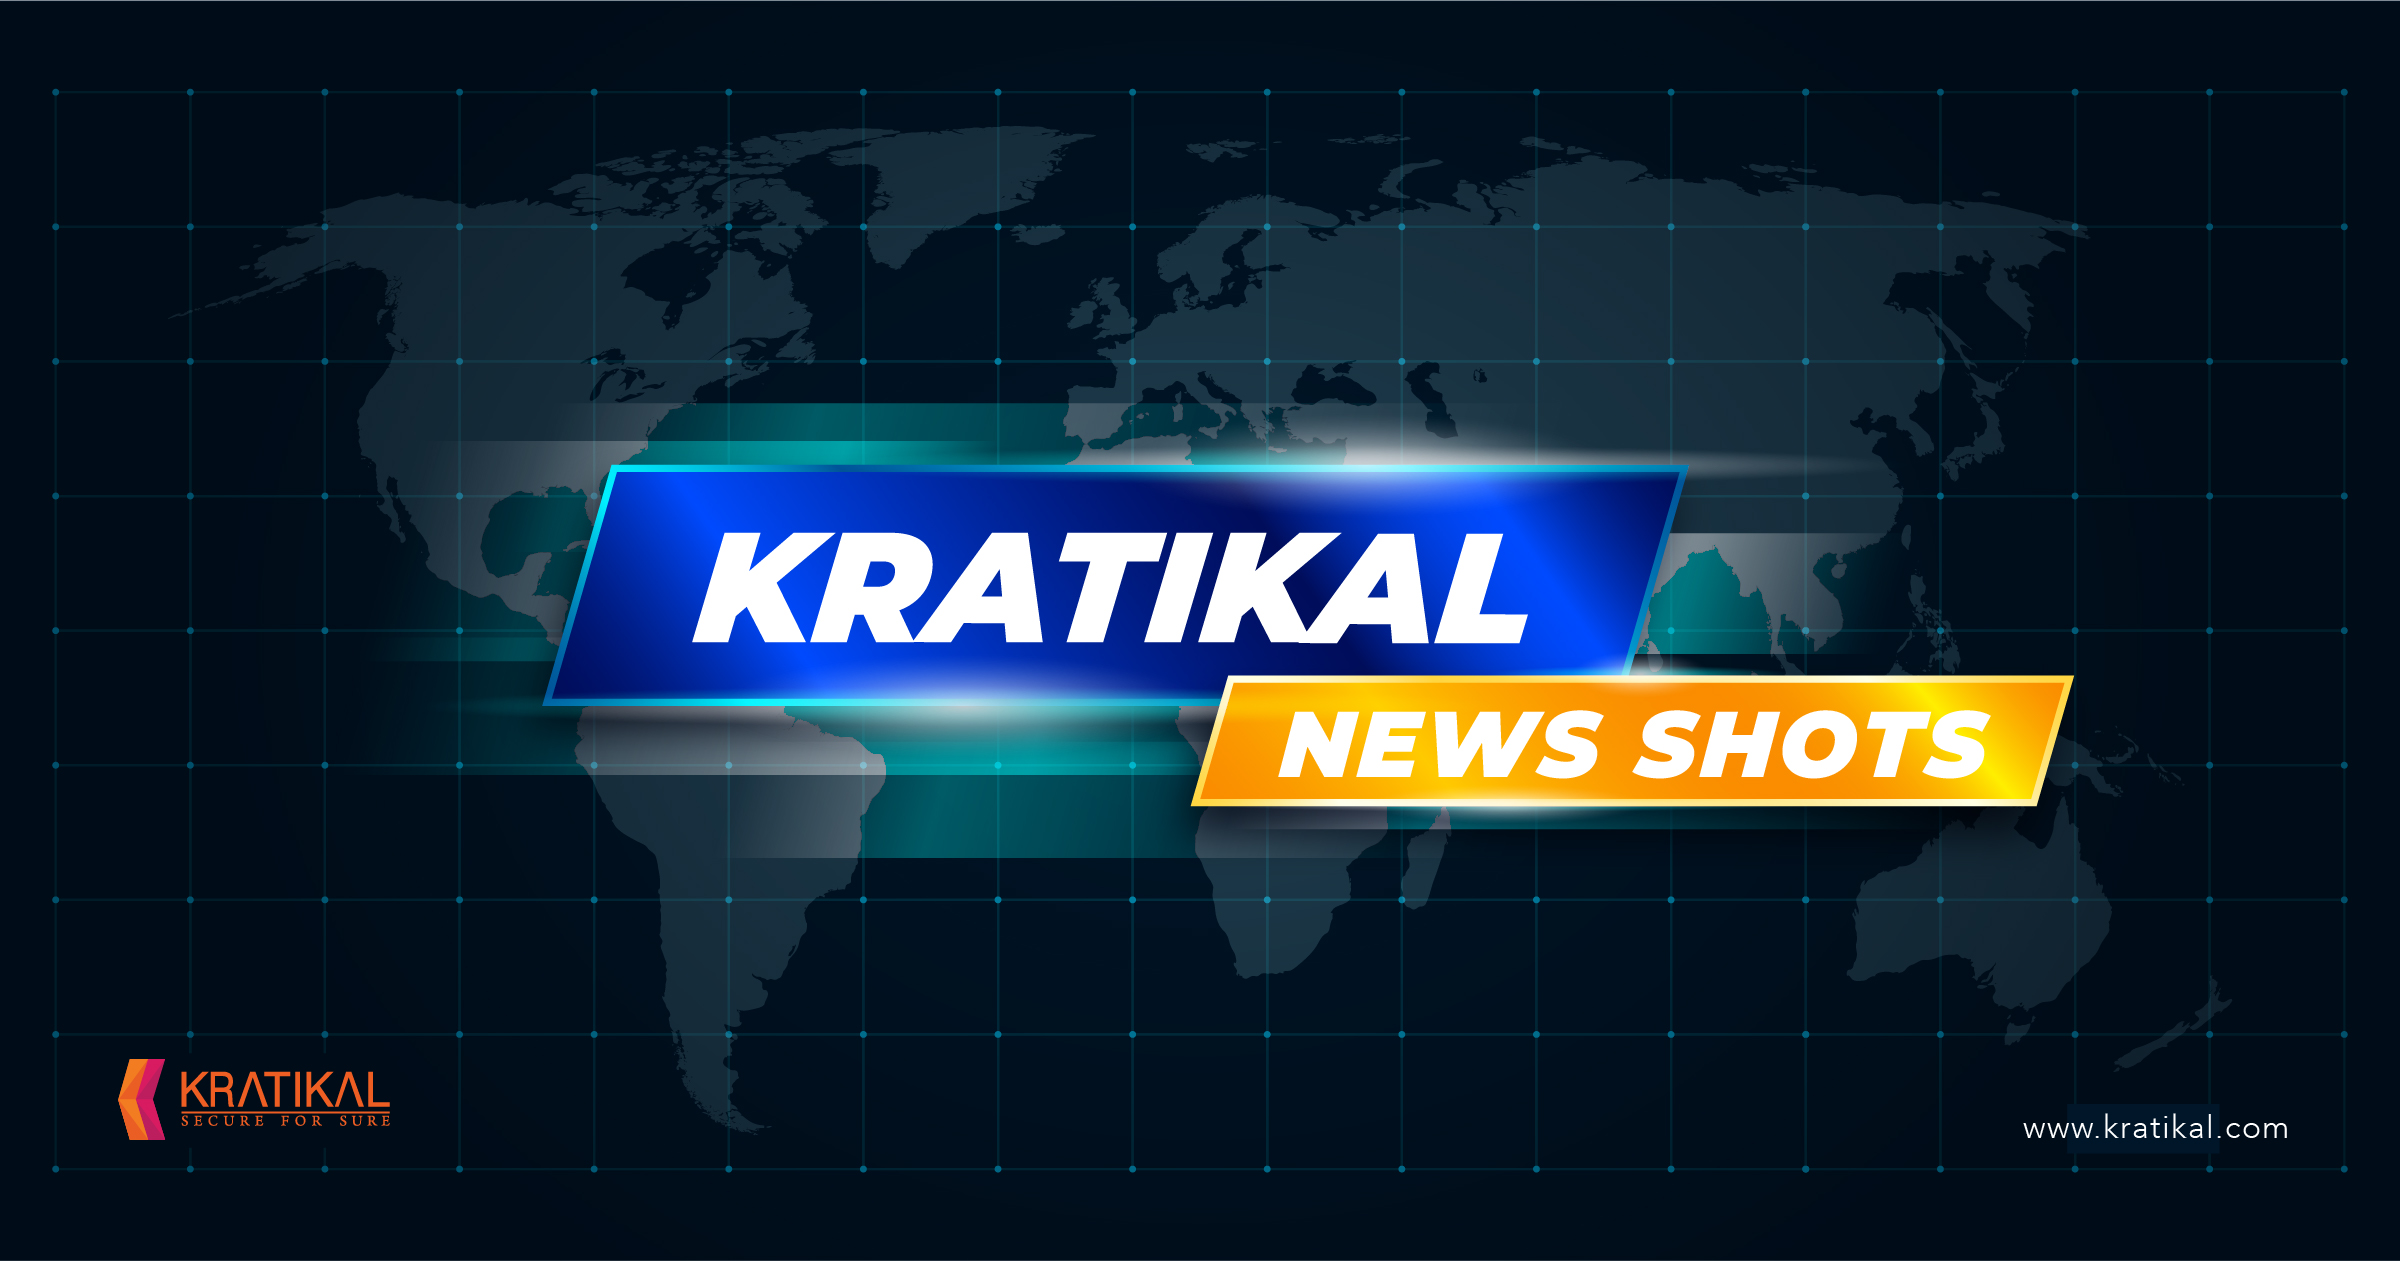 Kratikal News Shots